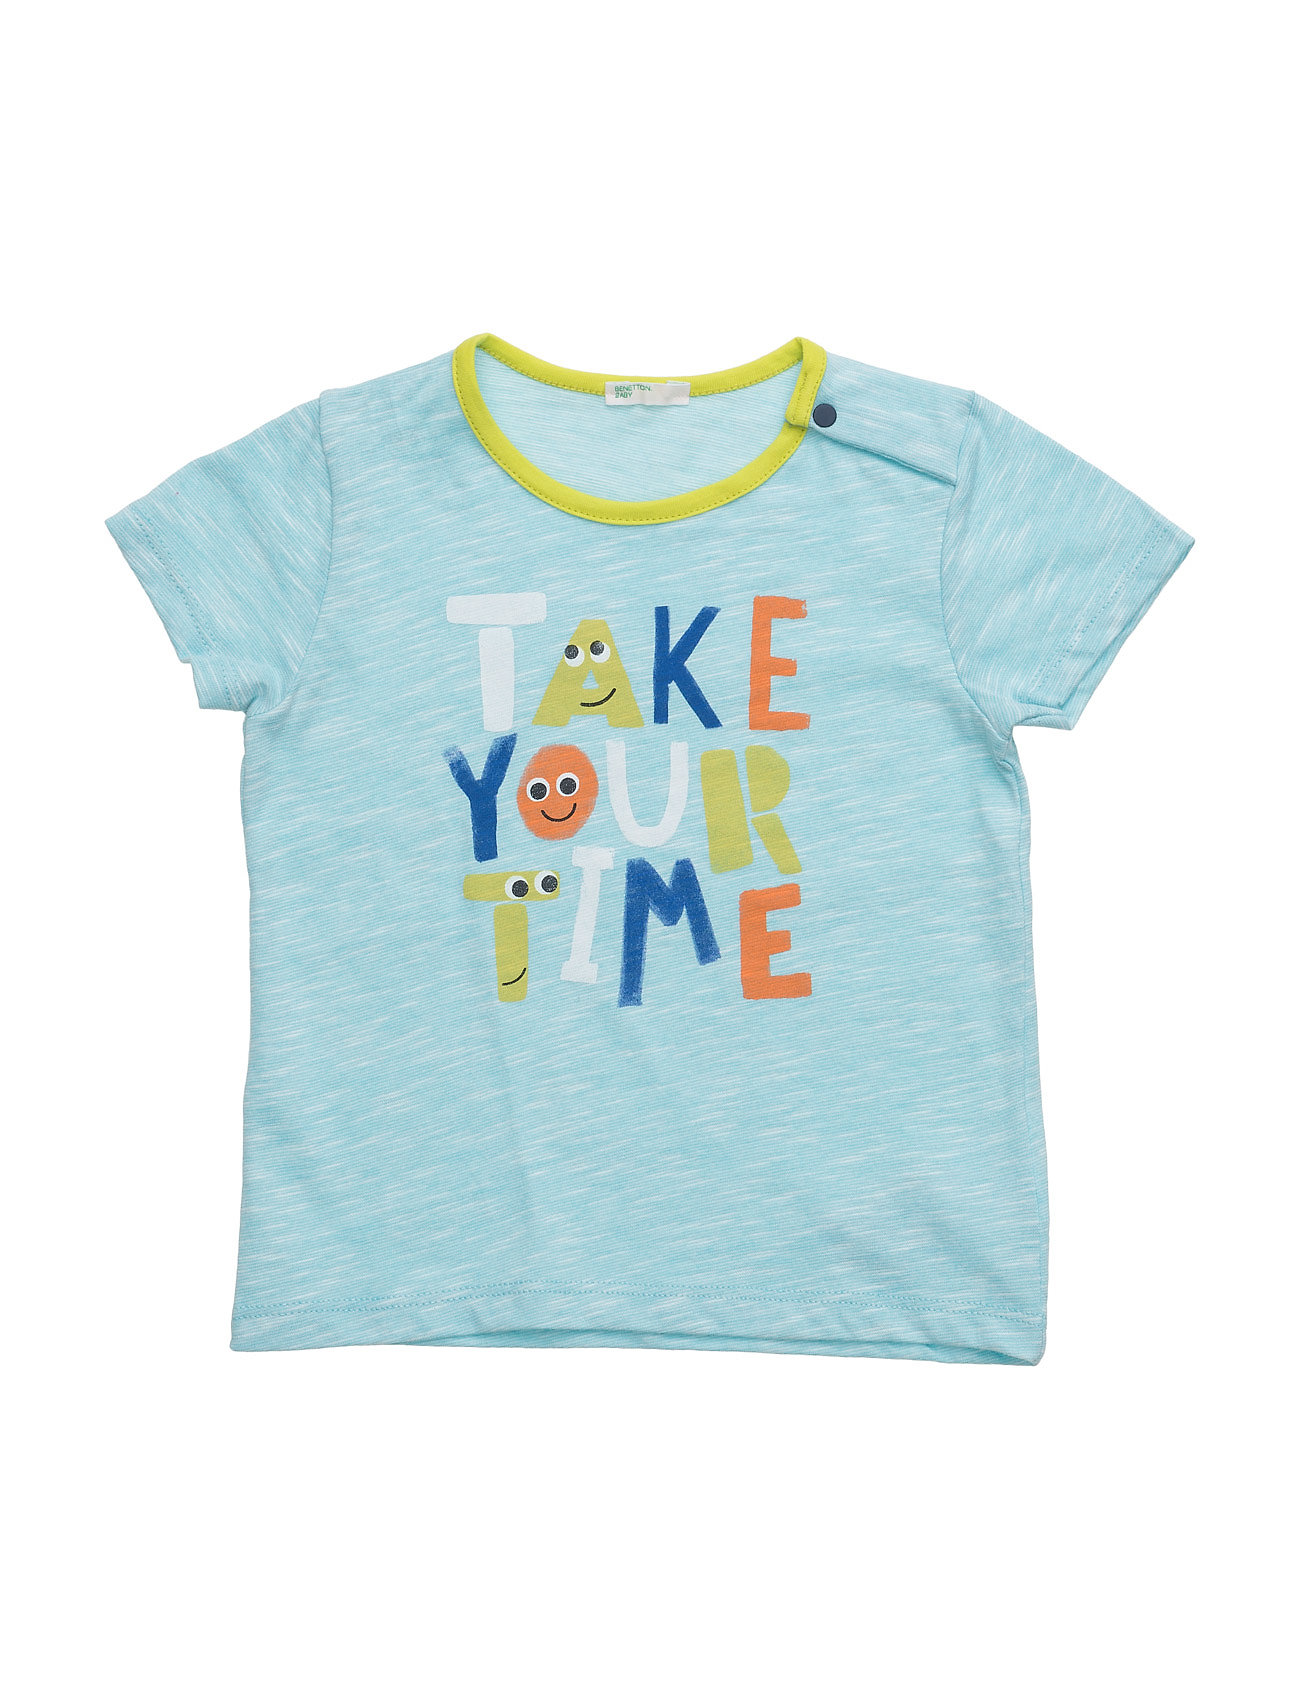 T-Shirt United Colors of Benetton Kortærmede t-shirts til Børn i